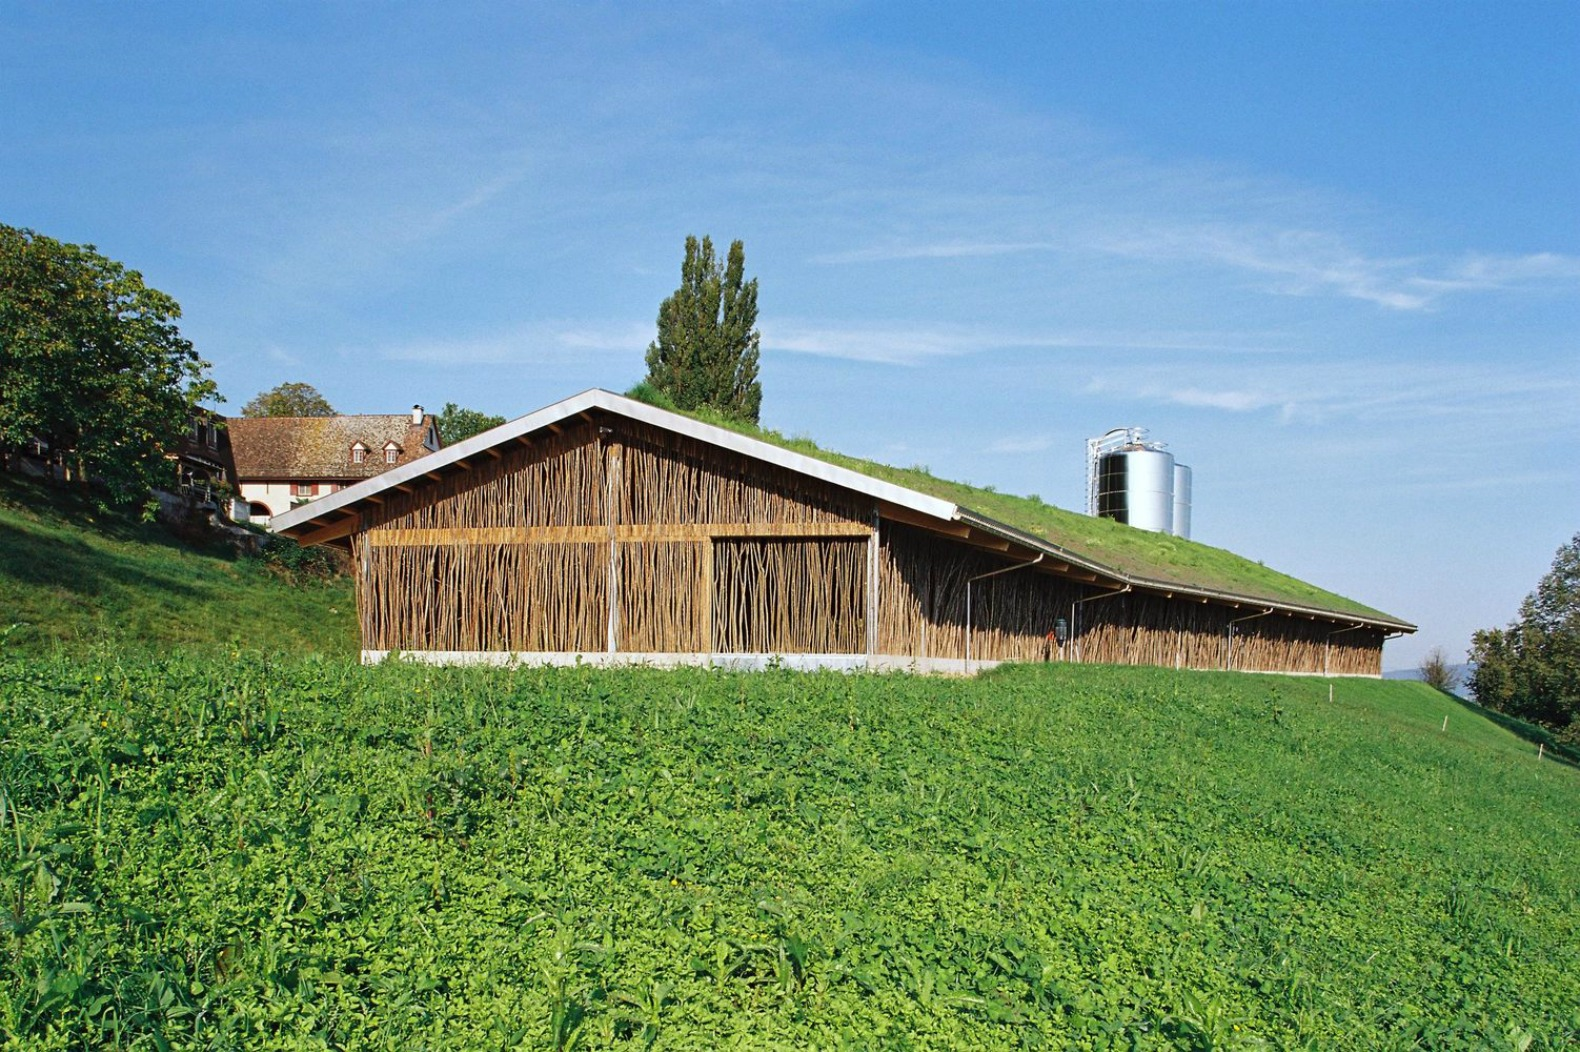 Bamboo interior design natural building blog - Beautiful Cow Barn In Basel Is Made Of Tree Branches Topped With A Grassy Roof